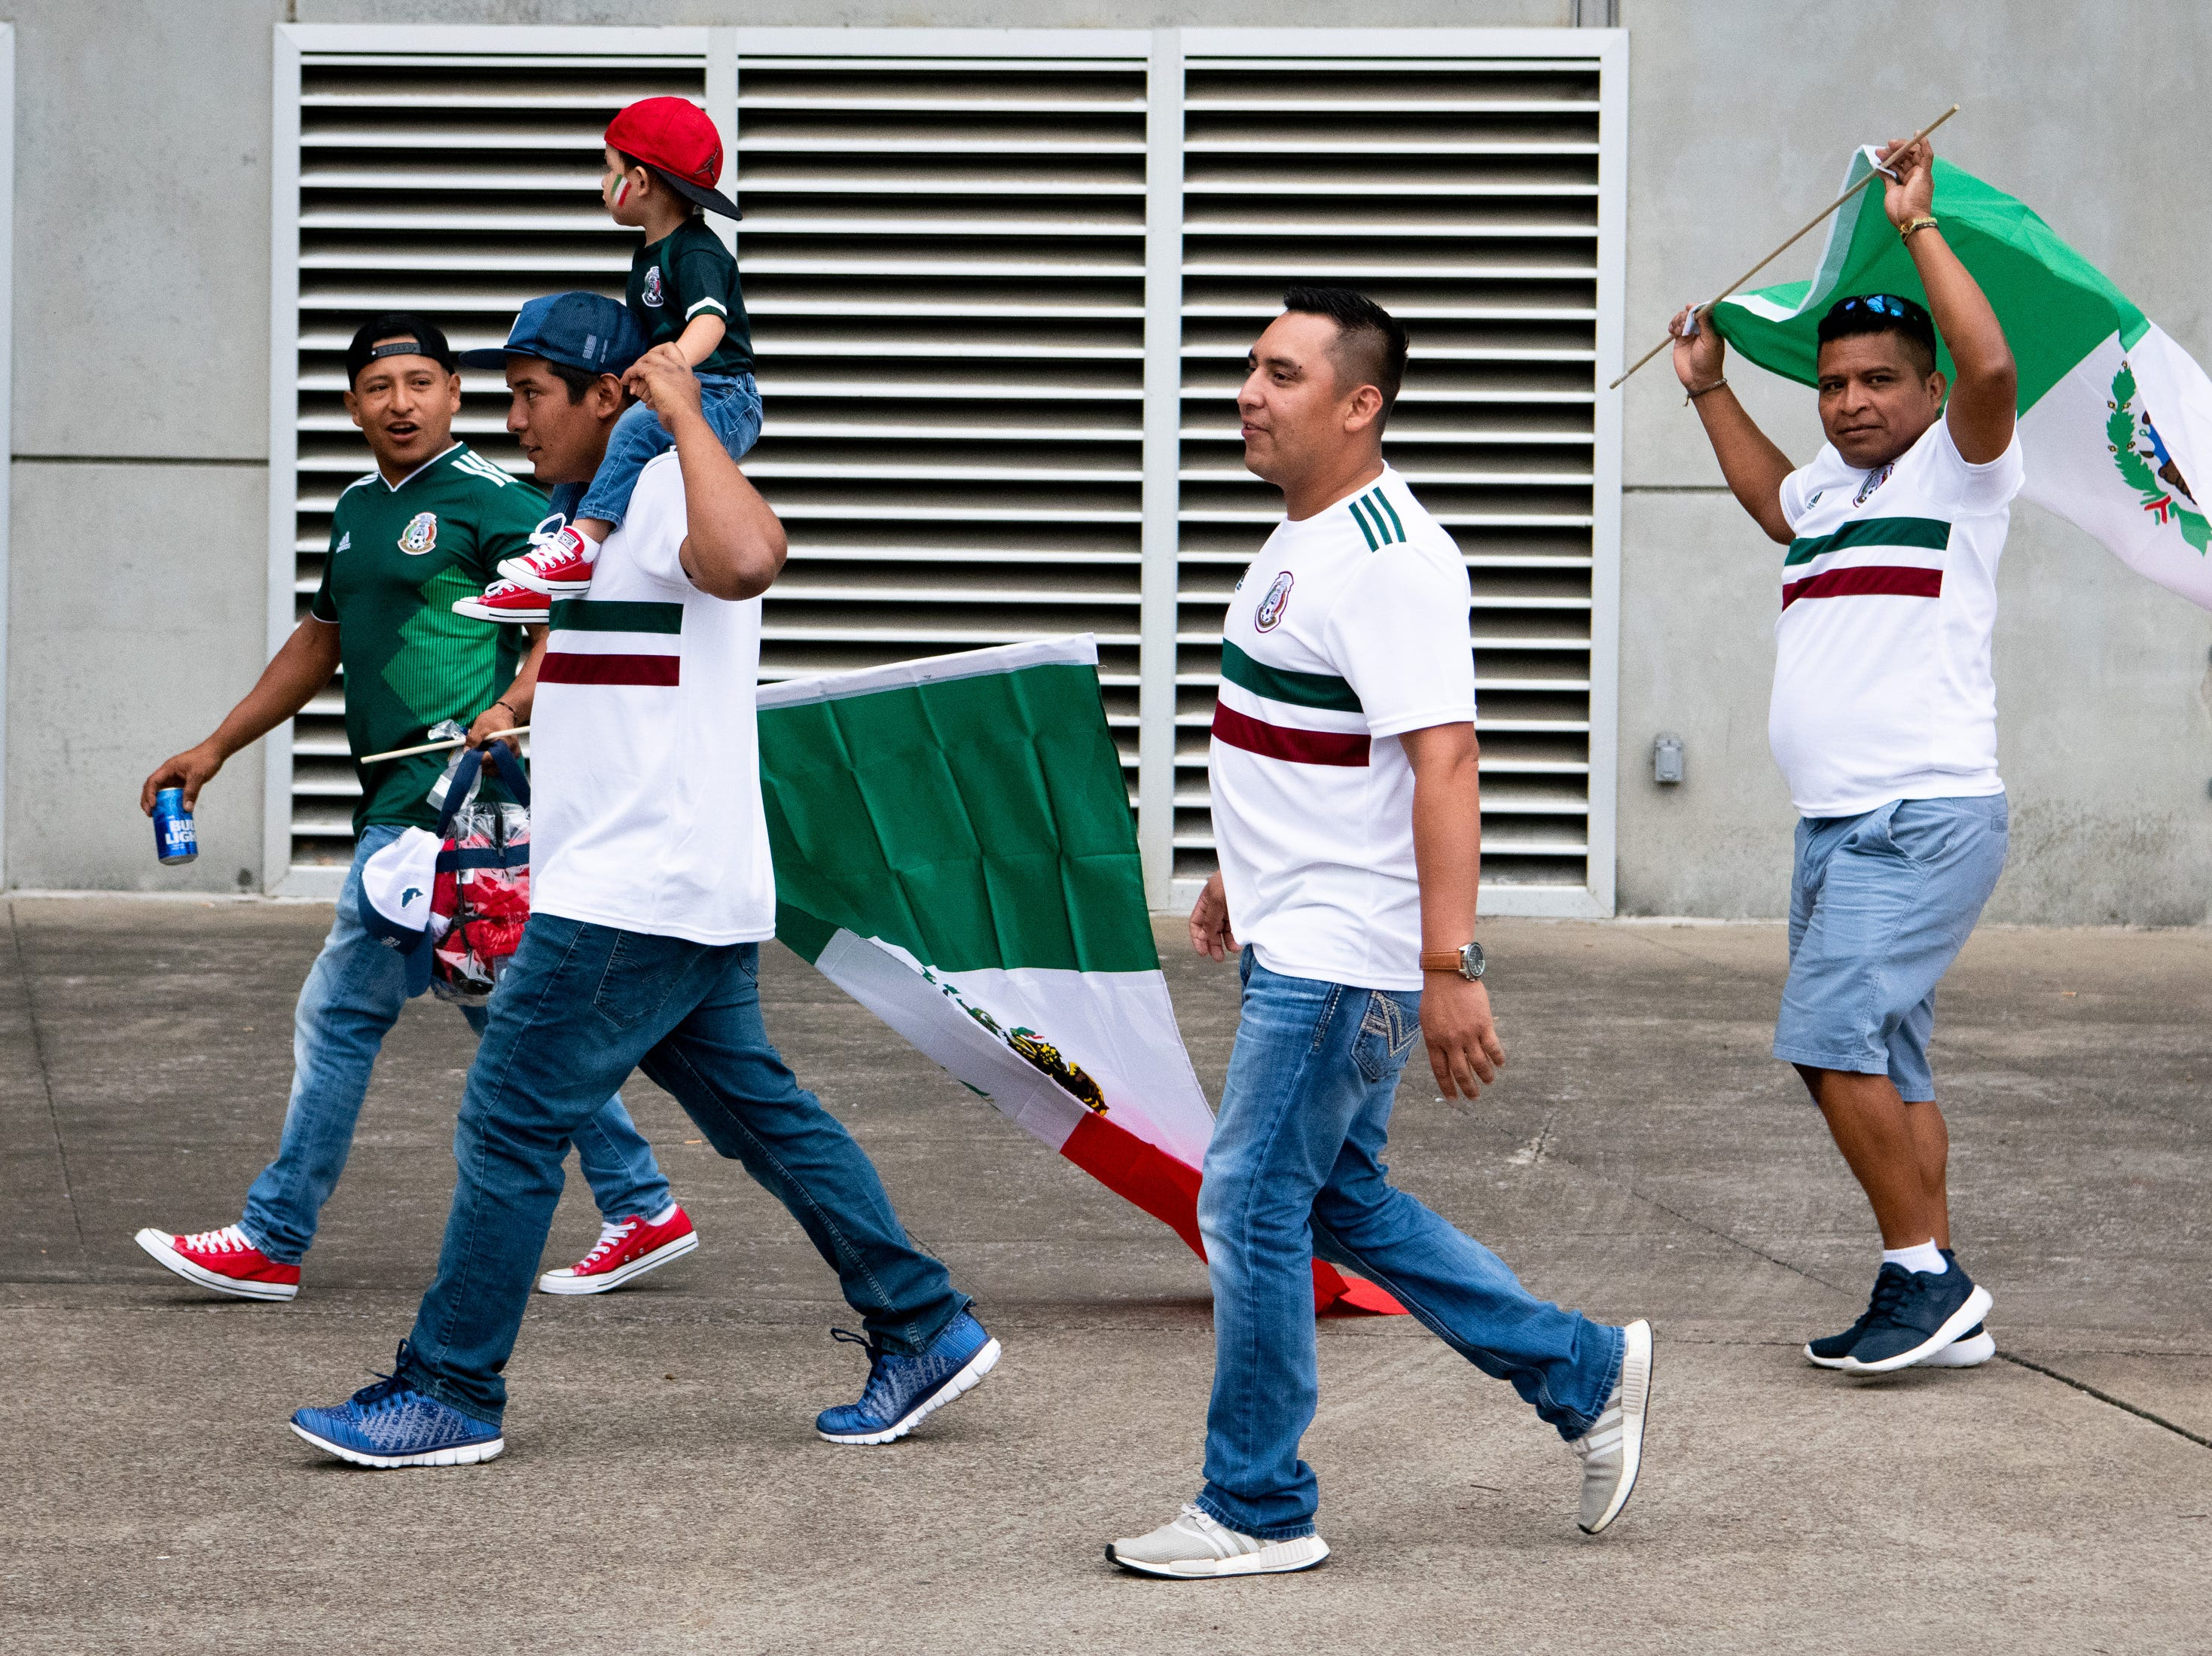 Fans arrive before the game between USA and Mexico at Nissan Stadium in Nashville, Tenn., Tuesday, Sept. 11, 2018.